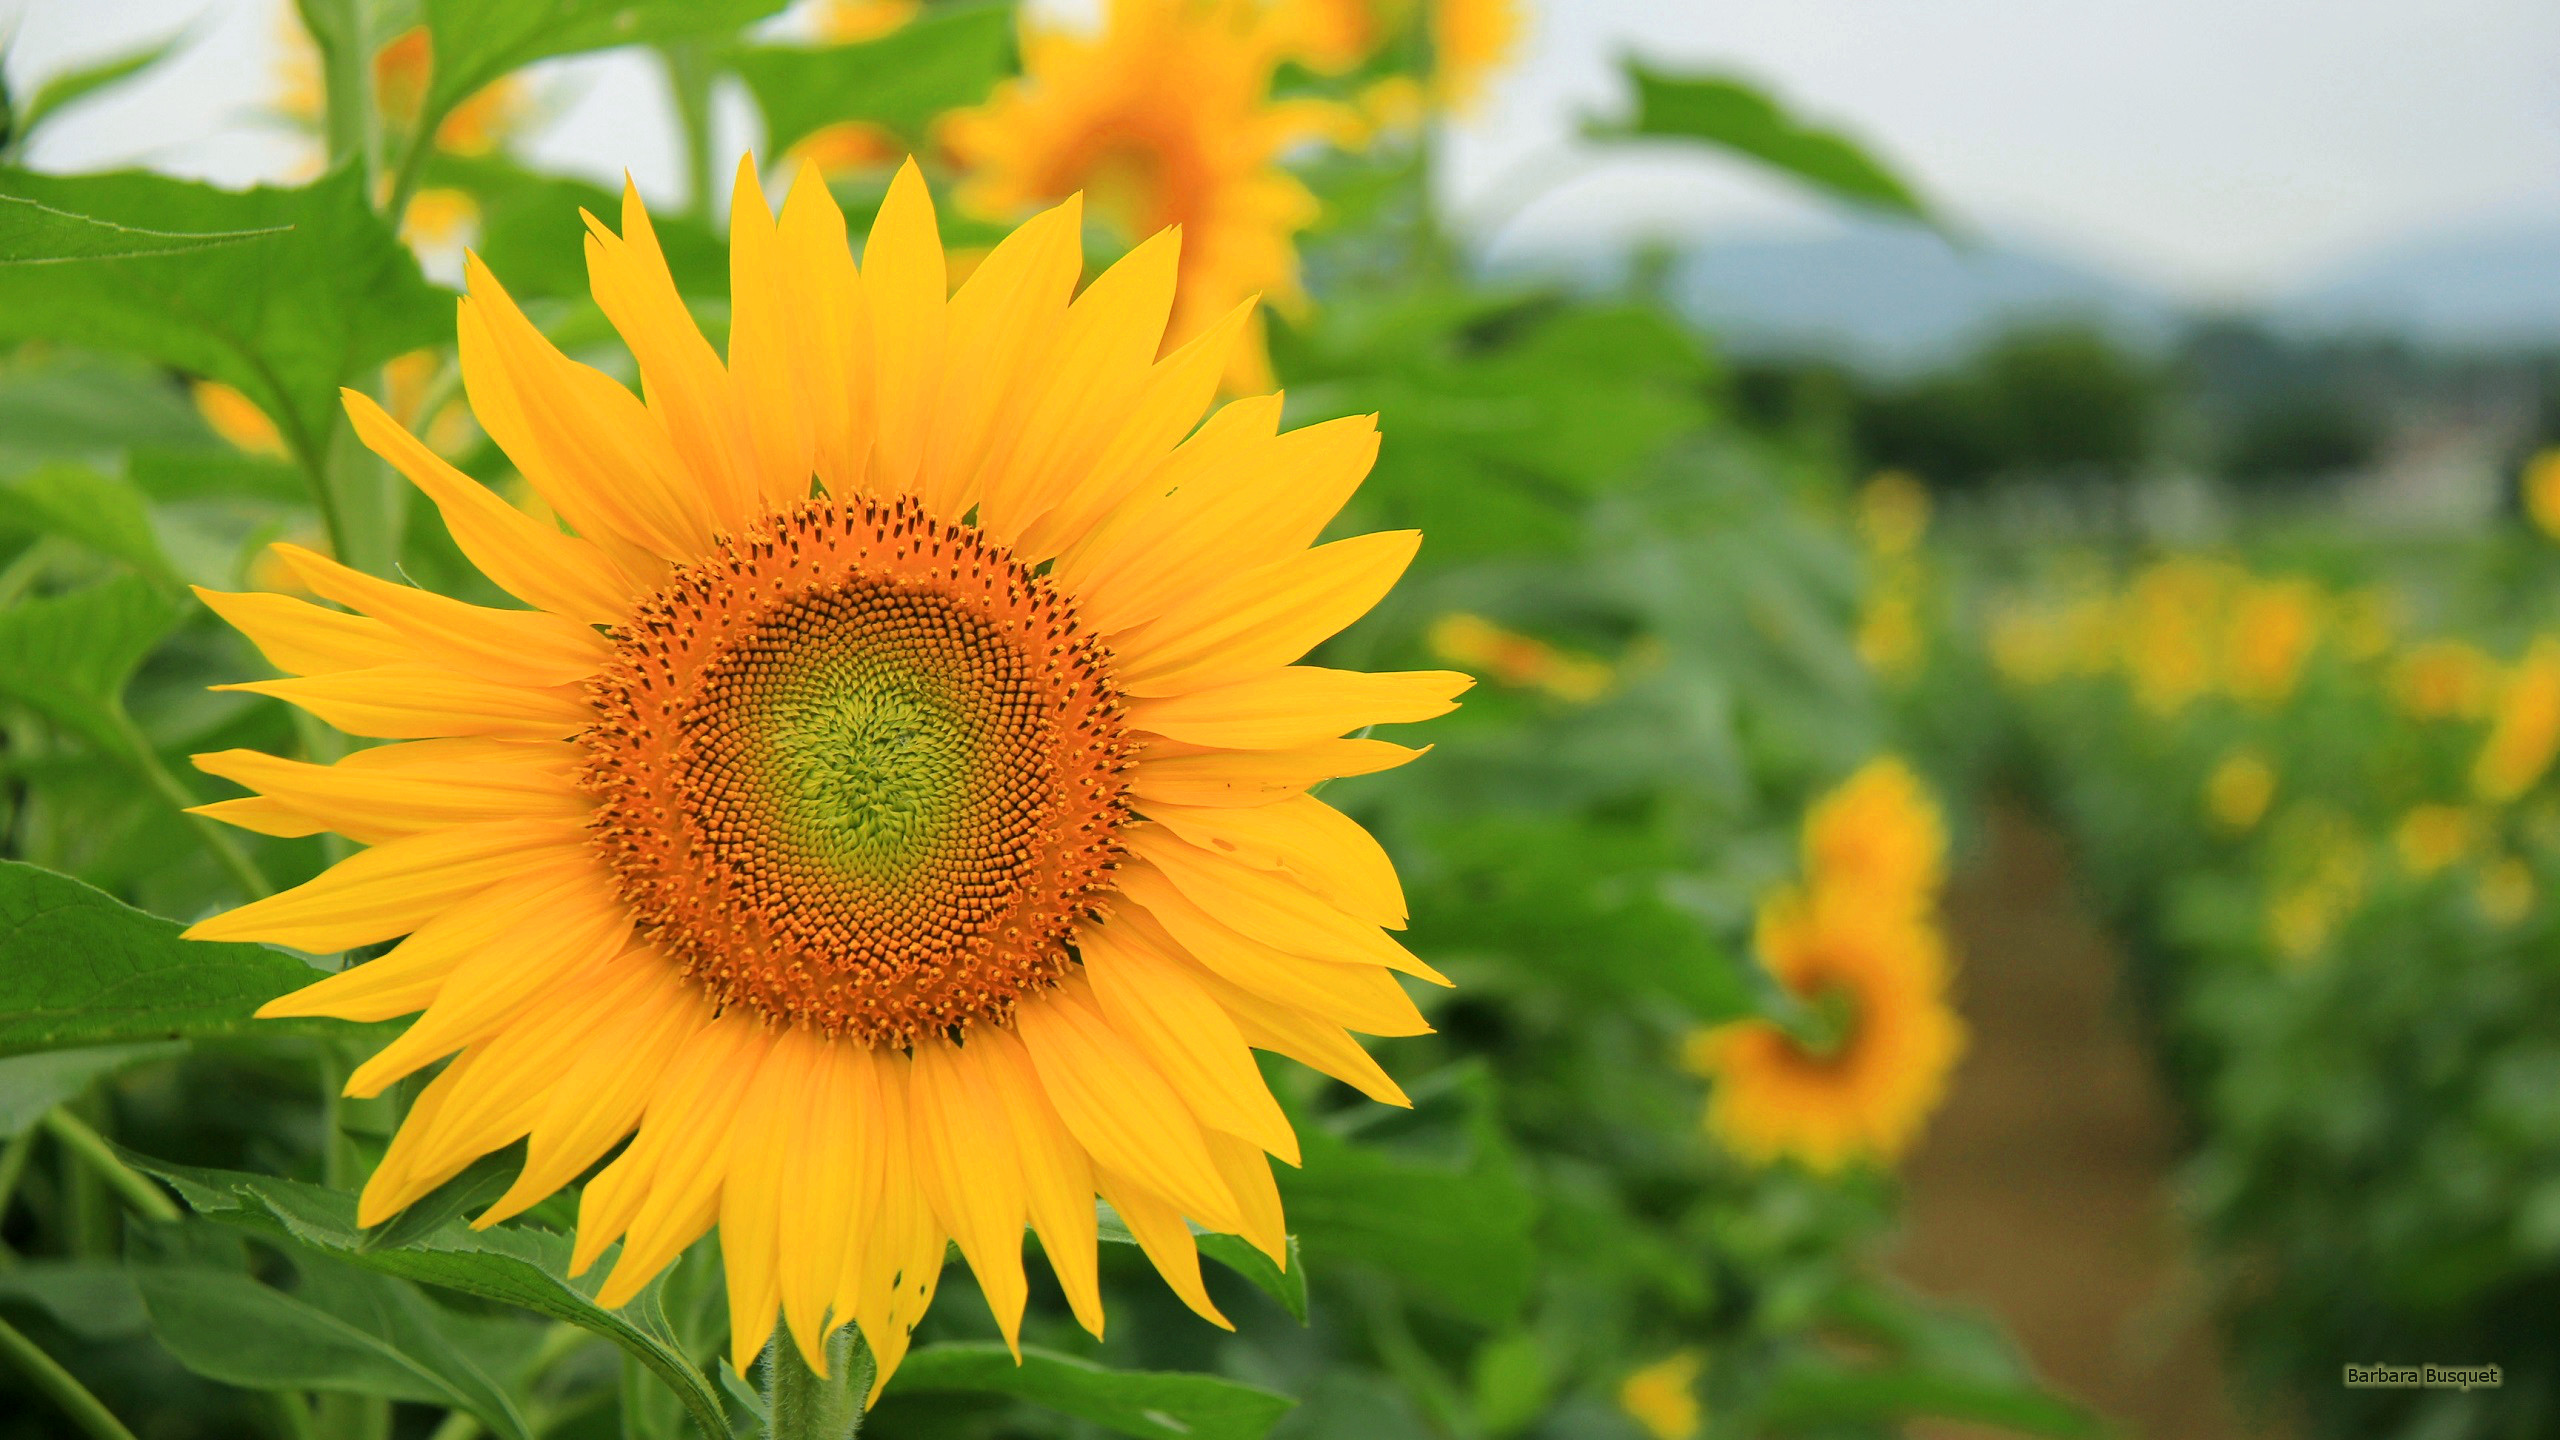 sunflowers wallpapers - barbaras hd wallpapers